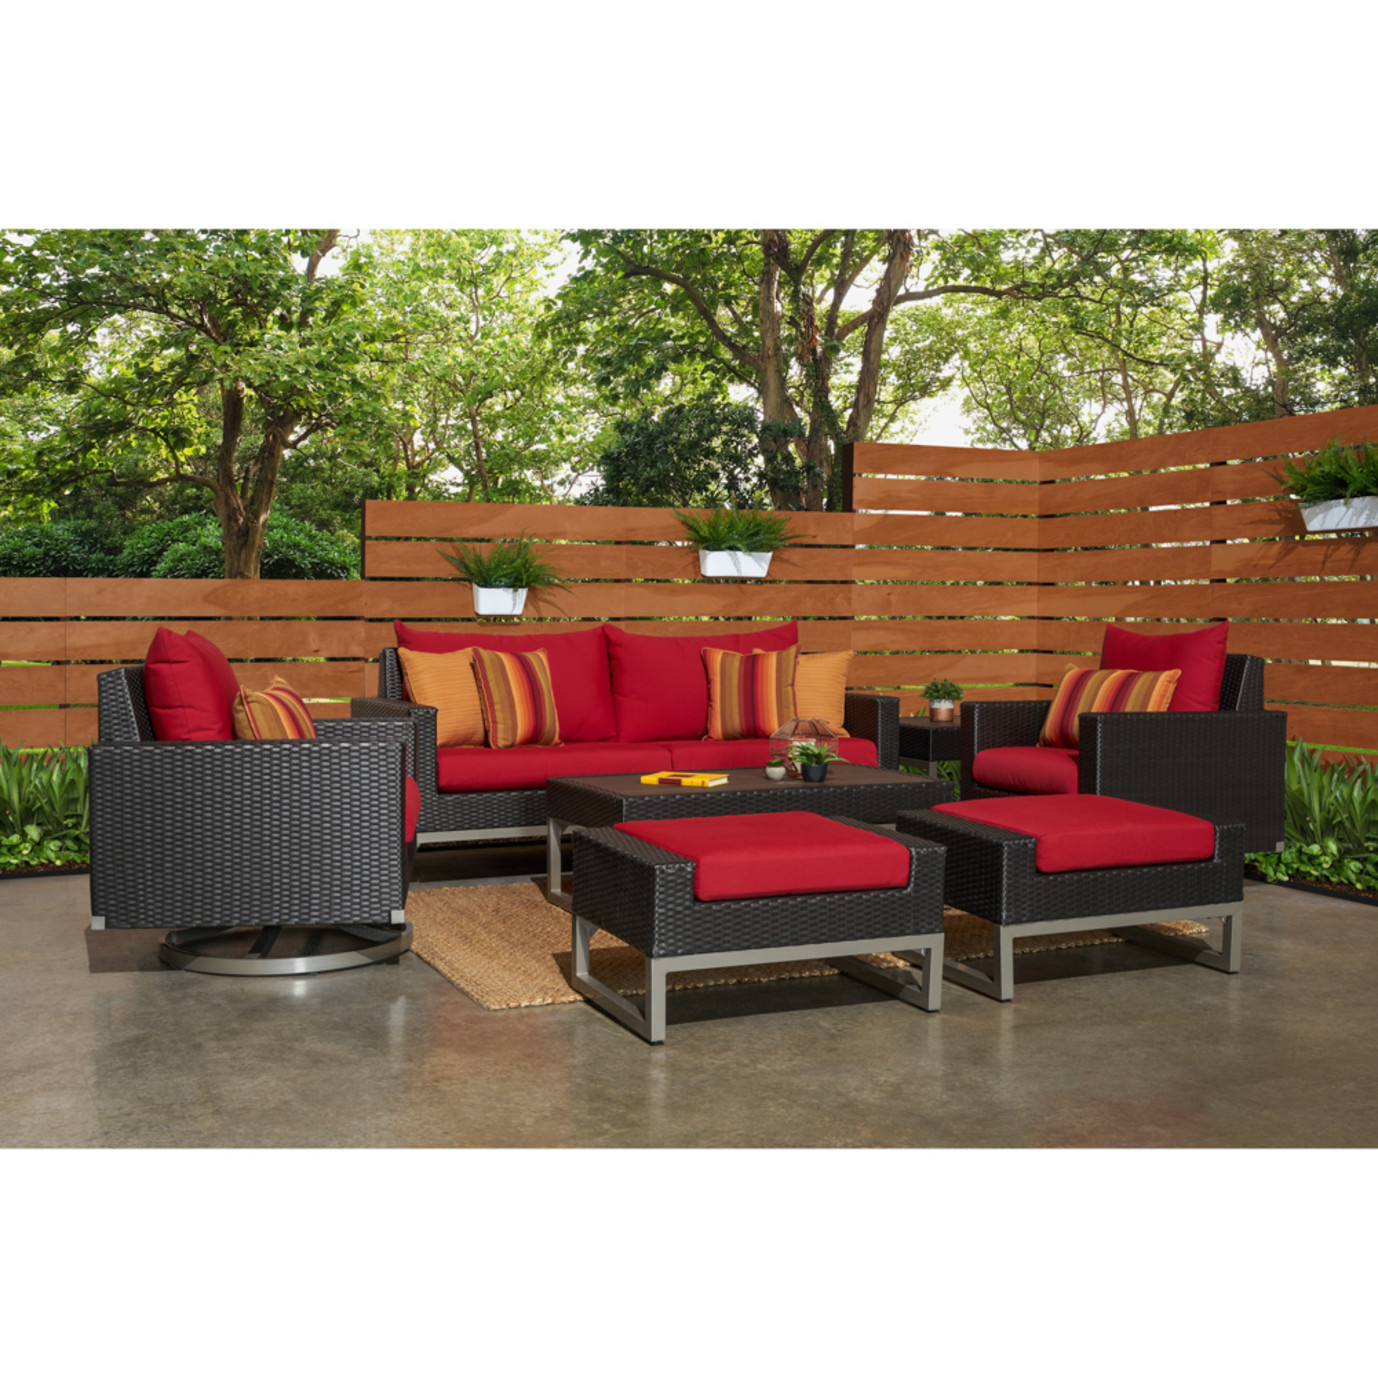 Milo™ Espresso 7pc Motion Deep Seating Set - Sunset Red